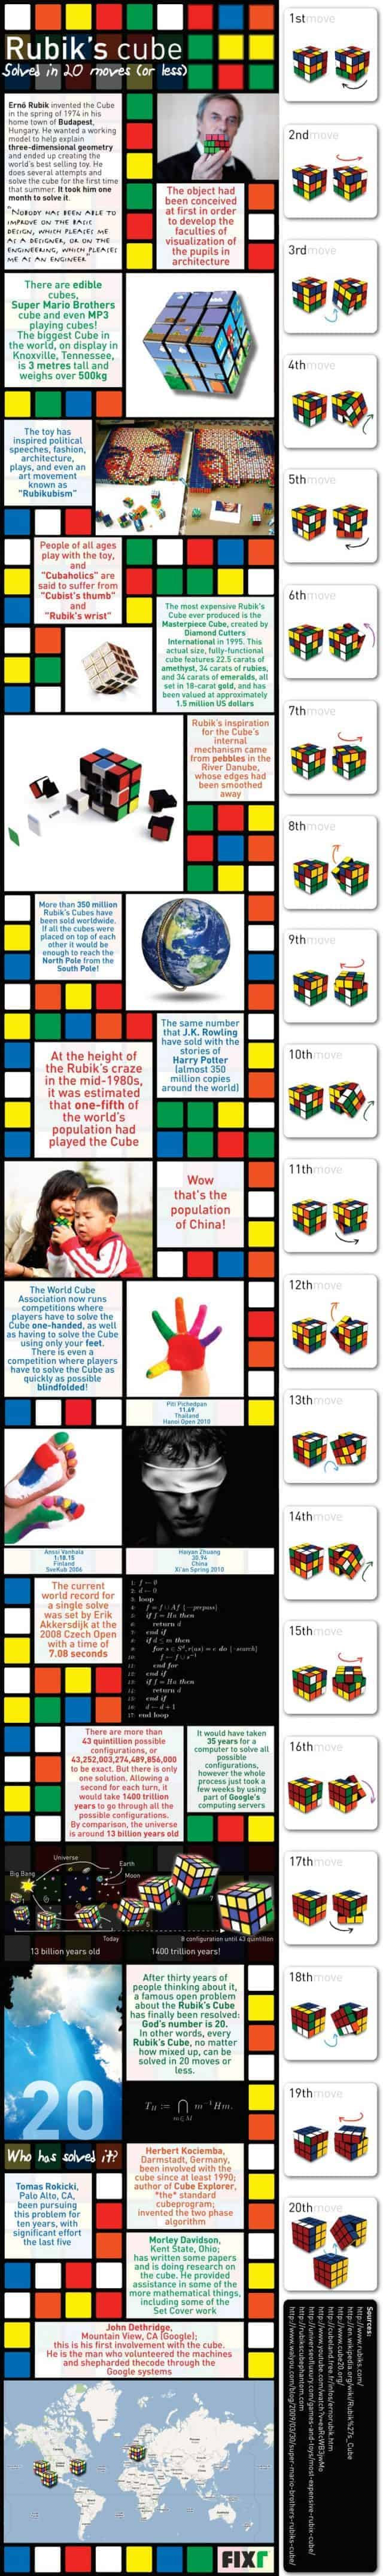 medium resolution of rubik s cube solved in 20 moves or less